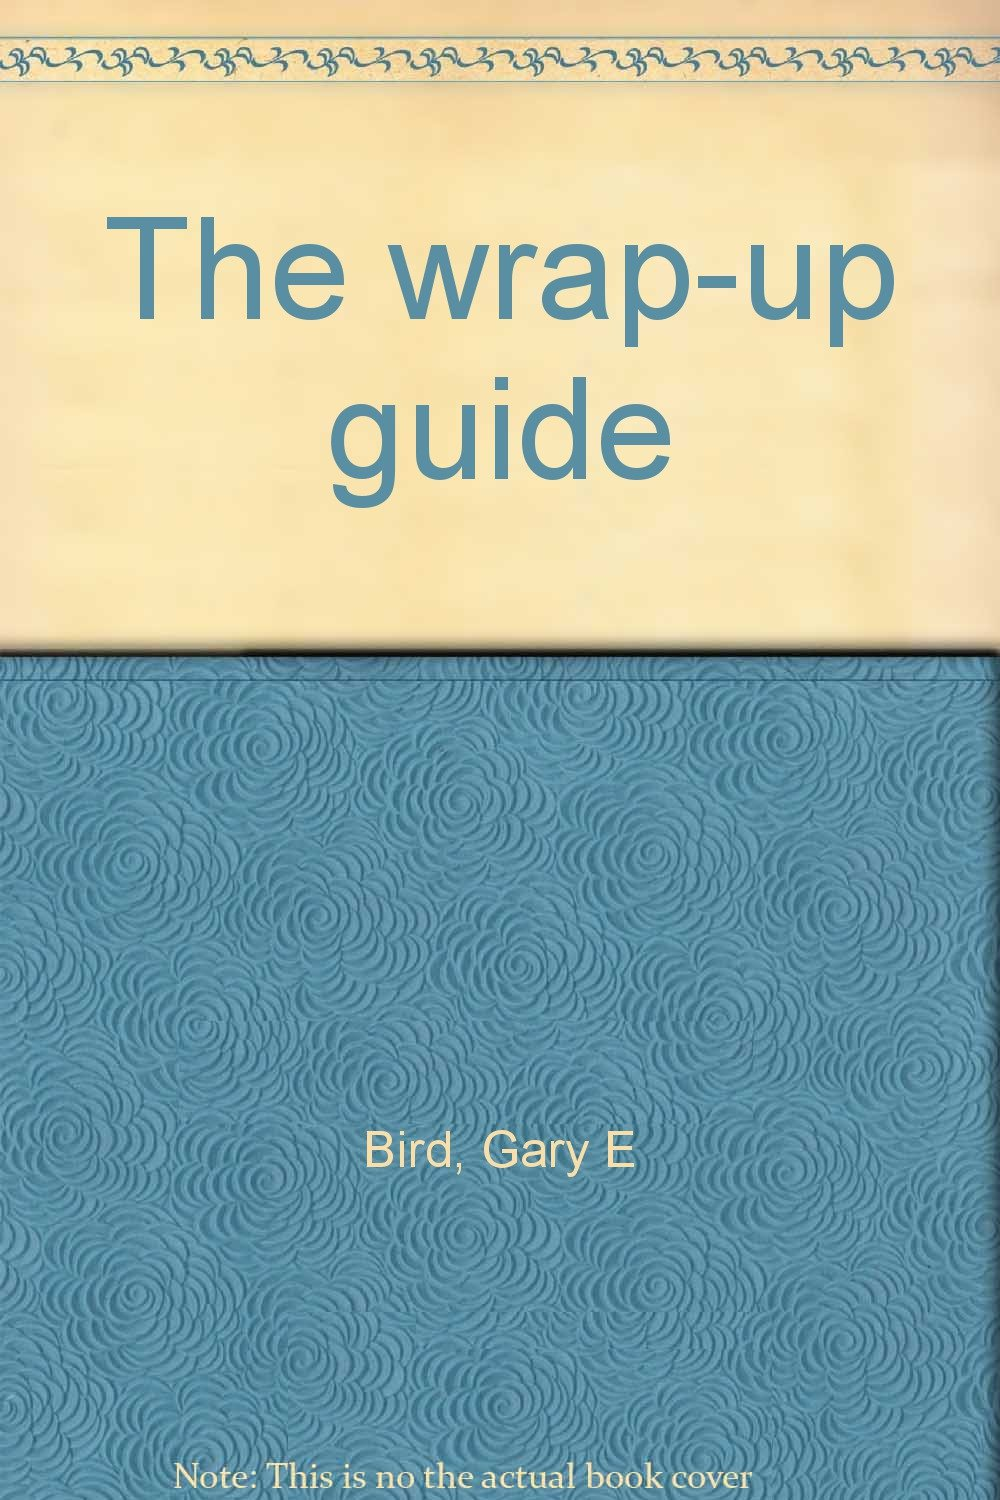 The wrap-up guide